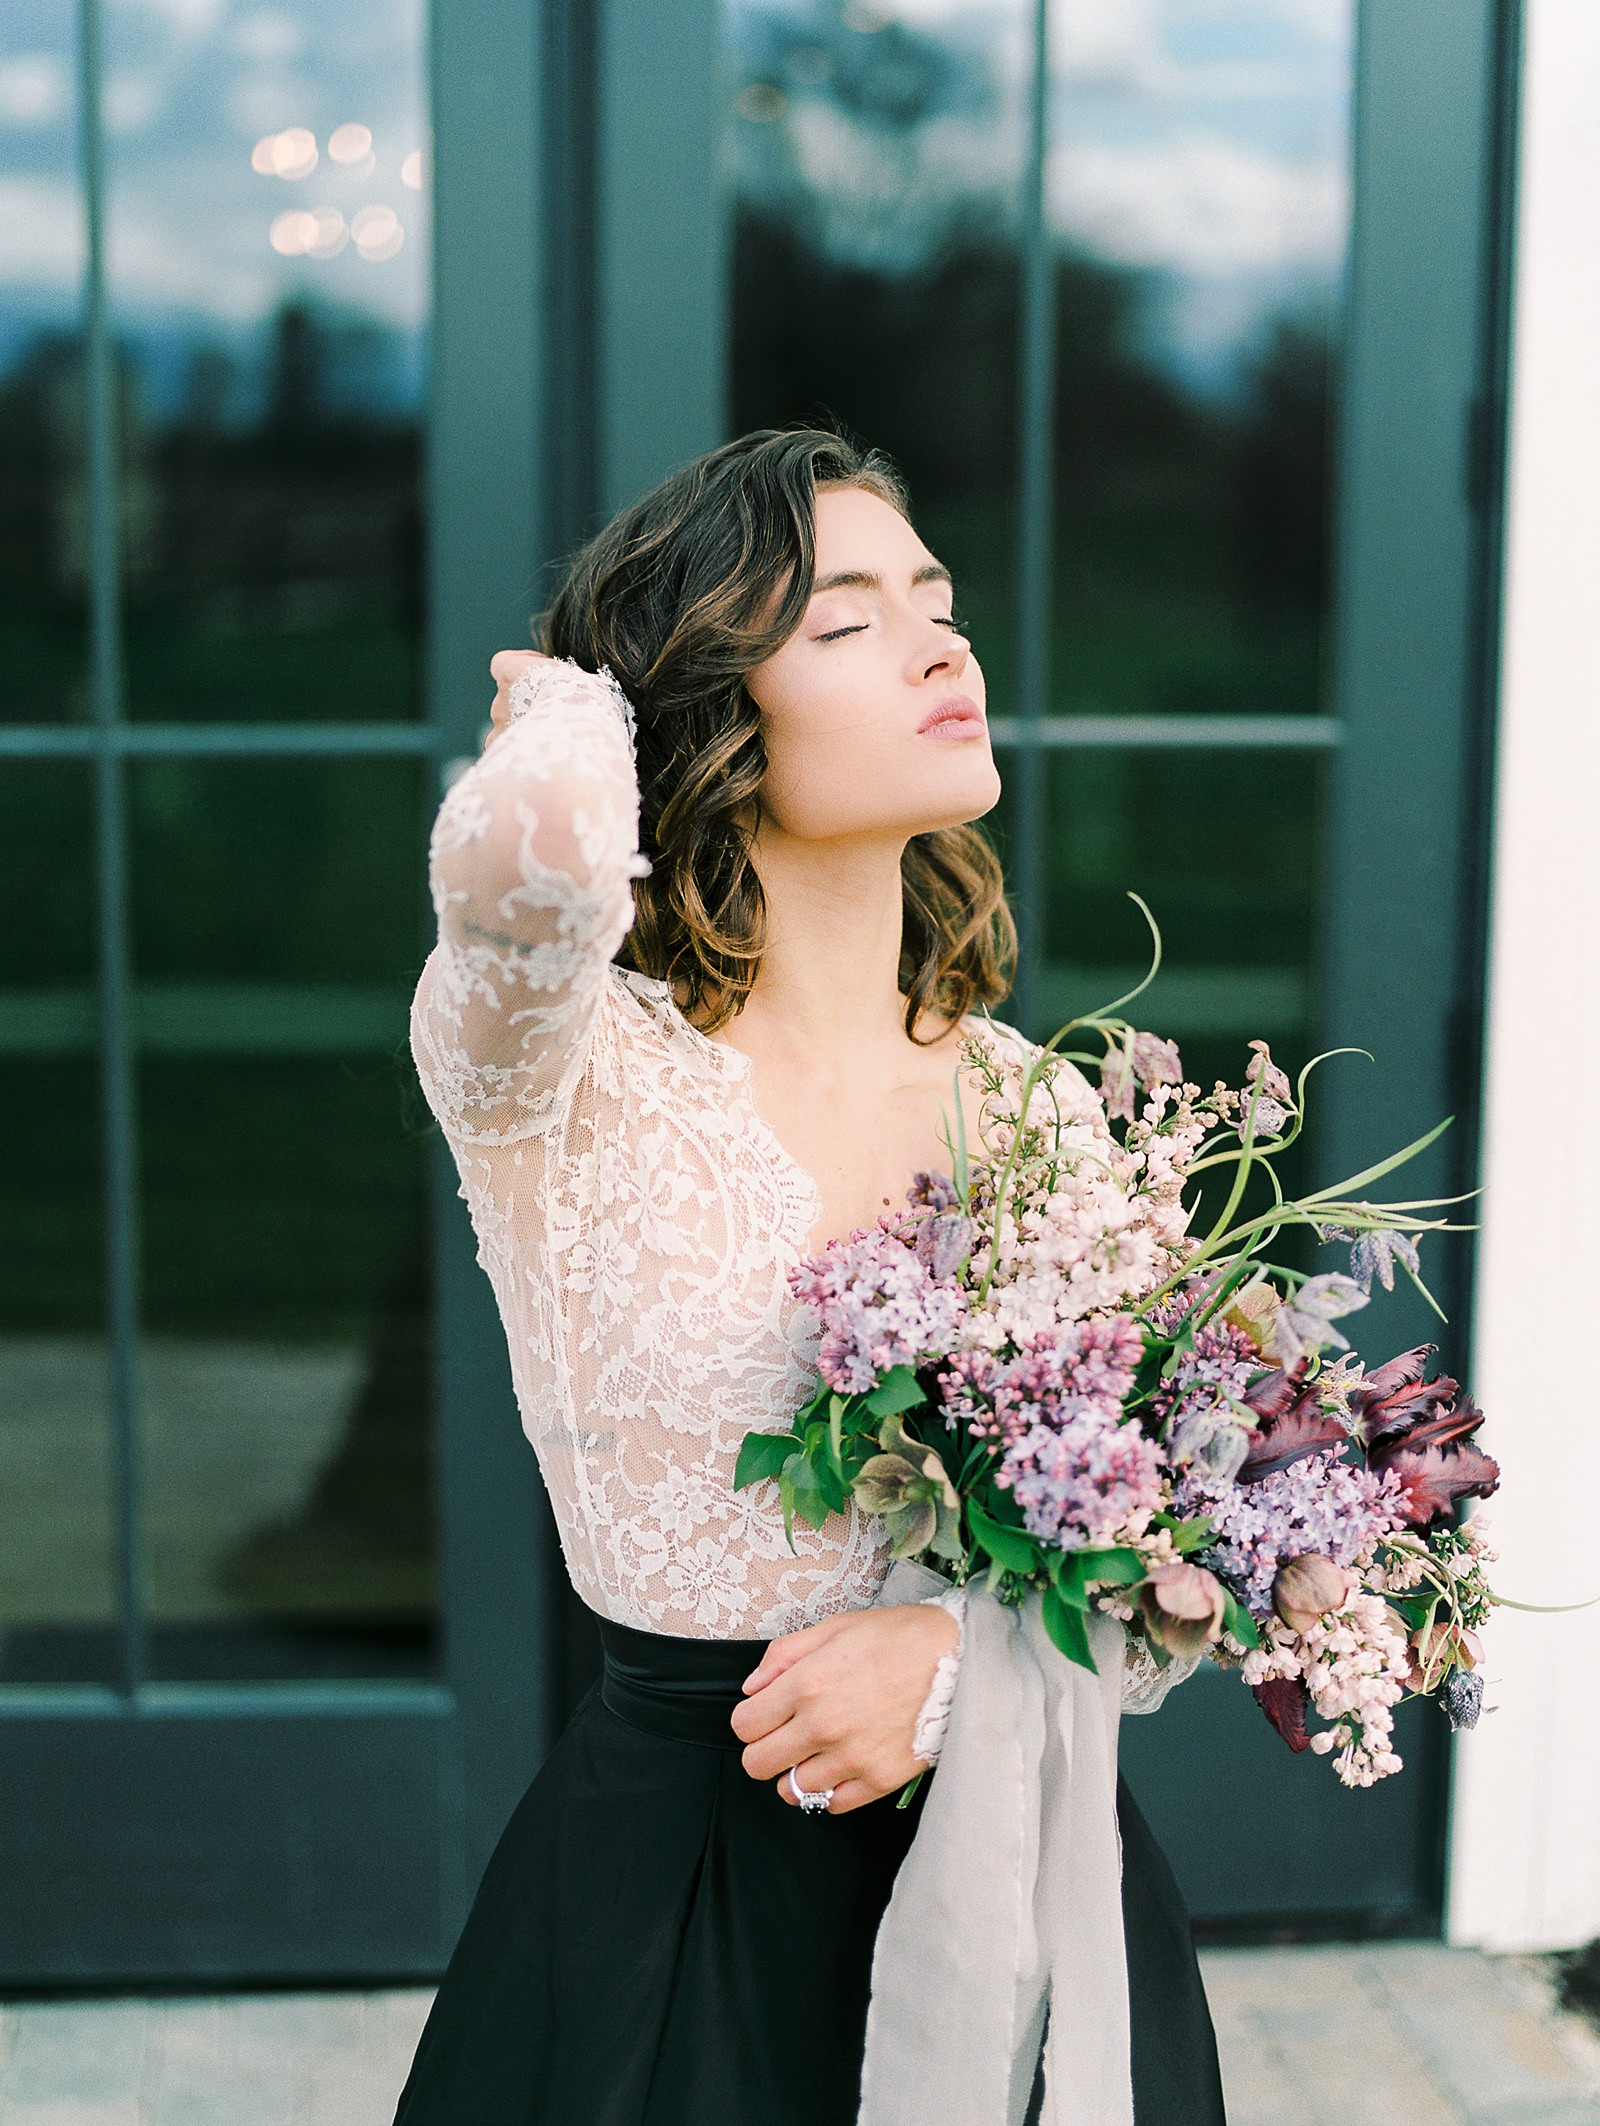 Heber Valley Natural Organic Wedding Inspiration at River Bottoms Ranch, Utah wedding venue film photography, bride with lace long sleeve top with black taffeta maxi skirt bridal separates, lilac purple wedding flowers bouquet